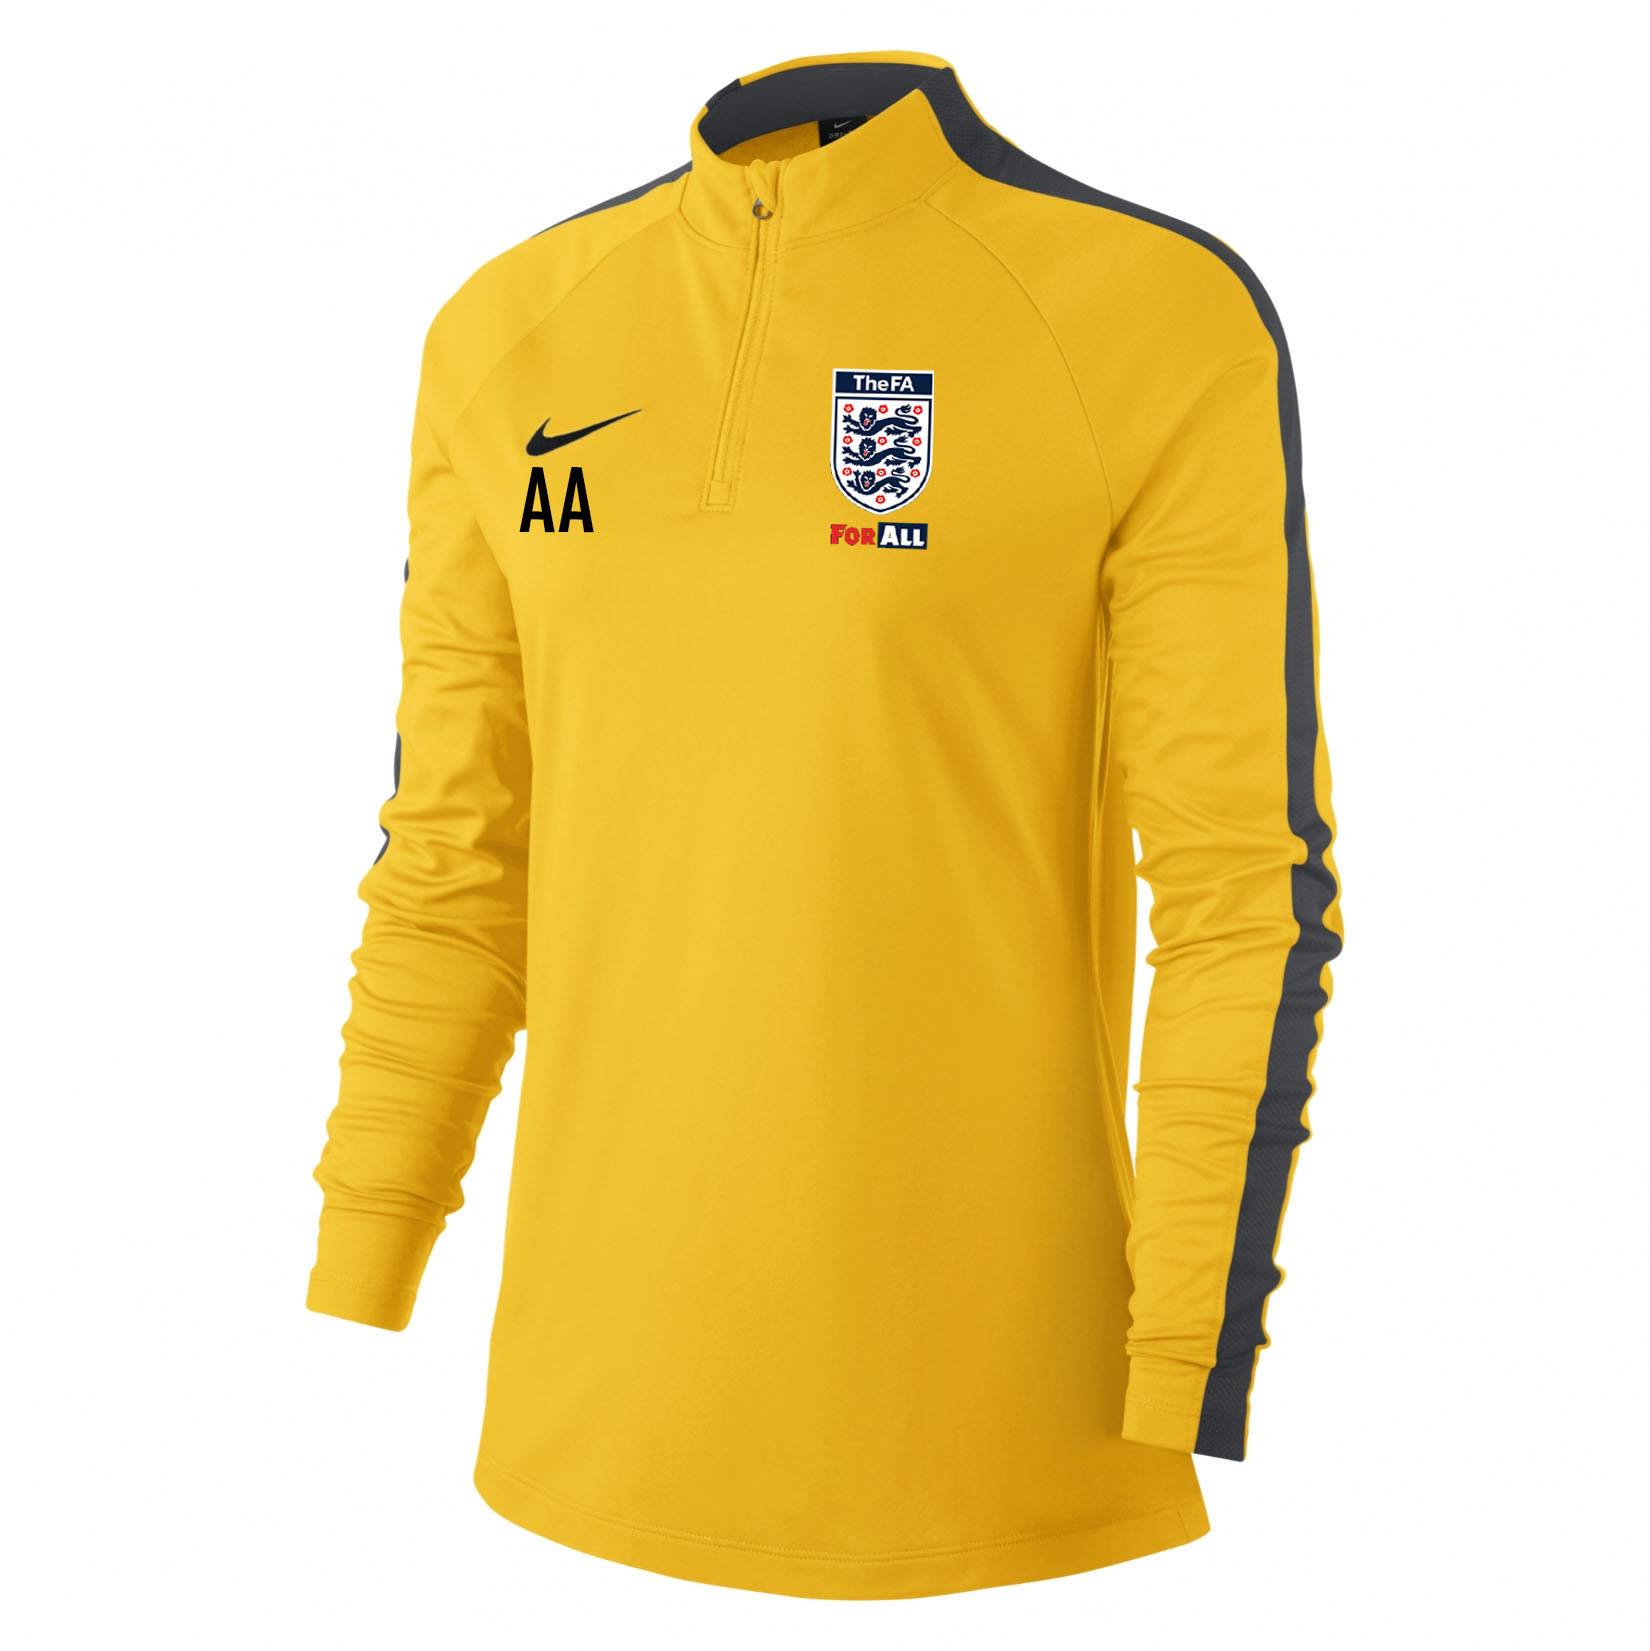 Nike Womens Academy 18 Midlayer Top (W) Tour Yellow-Anthracite-Black